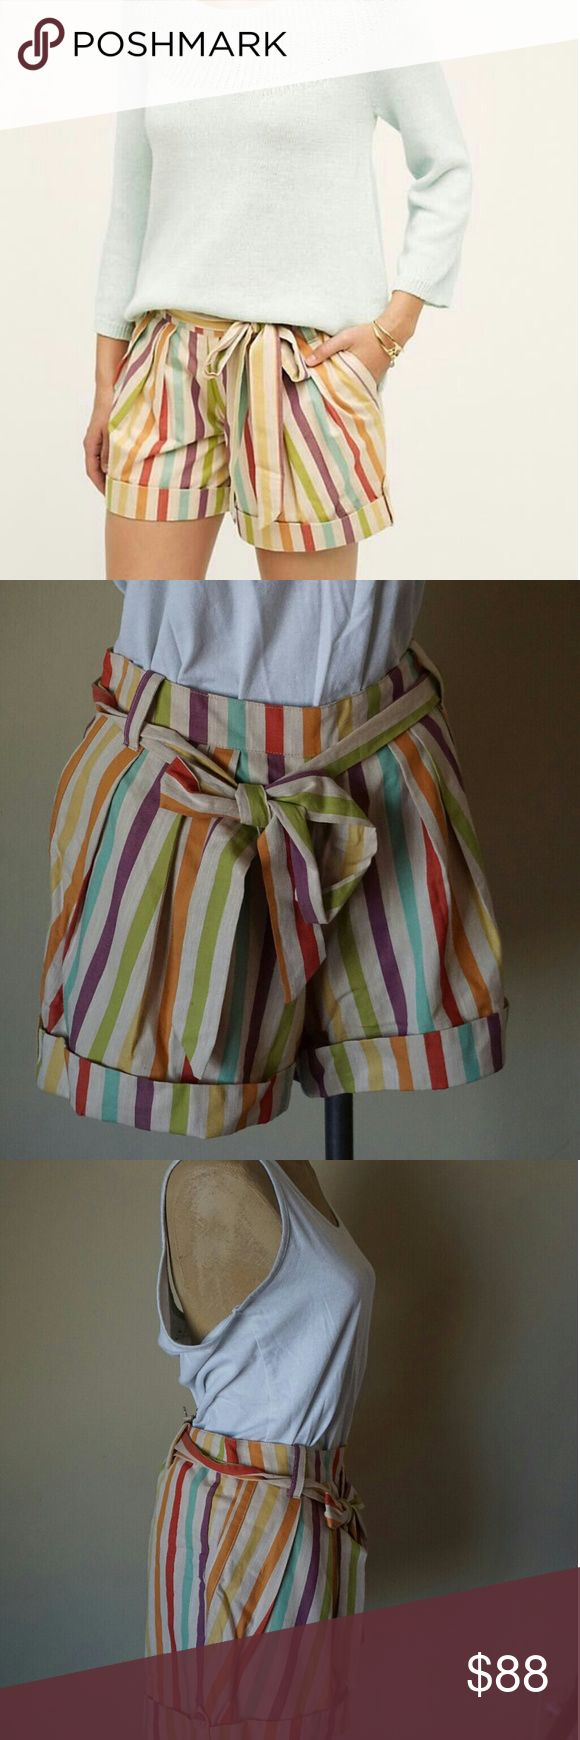 Anthropologie Eva Franco Sol Stripe Shorts NWT I am obsessed with these shorts! LOVE the vintage inspired candy stripe muted colors, the tie belt, the cuffed bottoms and pockets. They're brand new and need to be enjoyed ASAP! Anthropologie Shorts